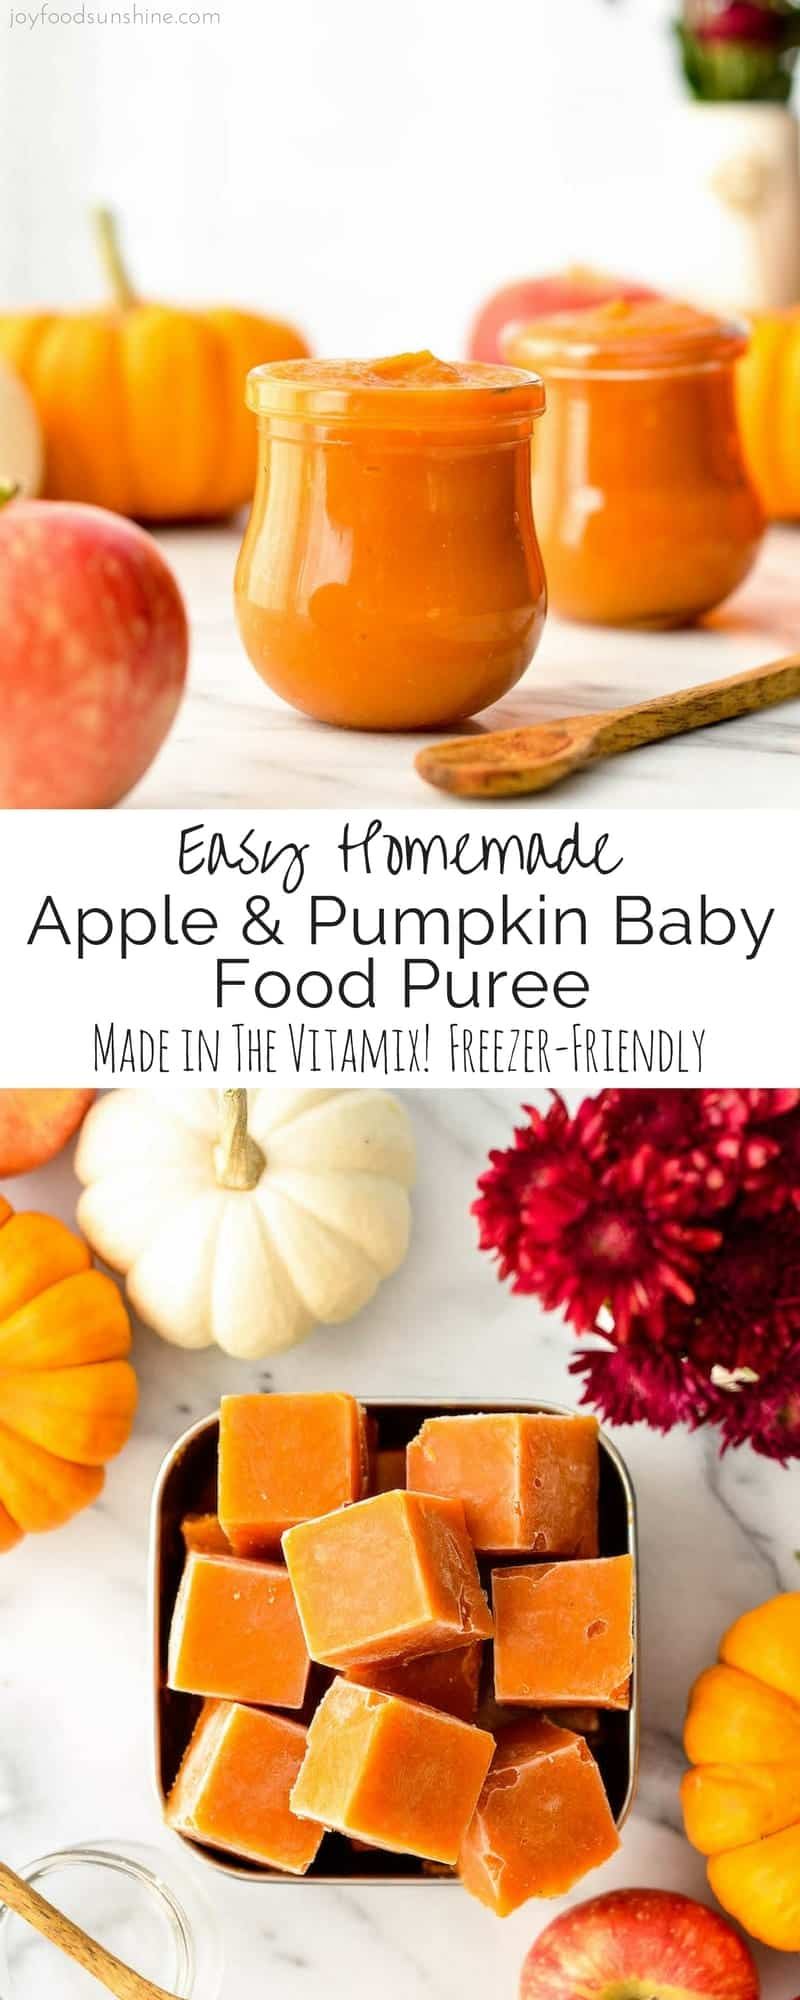 This Homemade Apple & Pumpkin Baby Food Puree is an easy & healthy recipe to feed your baby this fall! Only 3 ingredients (pumpkin, apples & water) means that it's naturally gluten-free, dairy-free, & vegan with no preservatives, food coloring or additives!